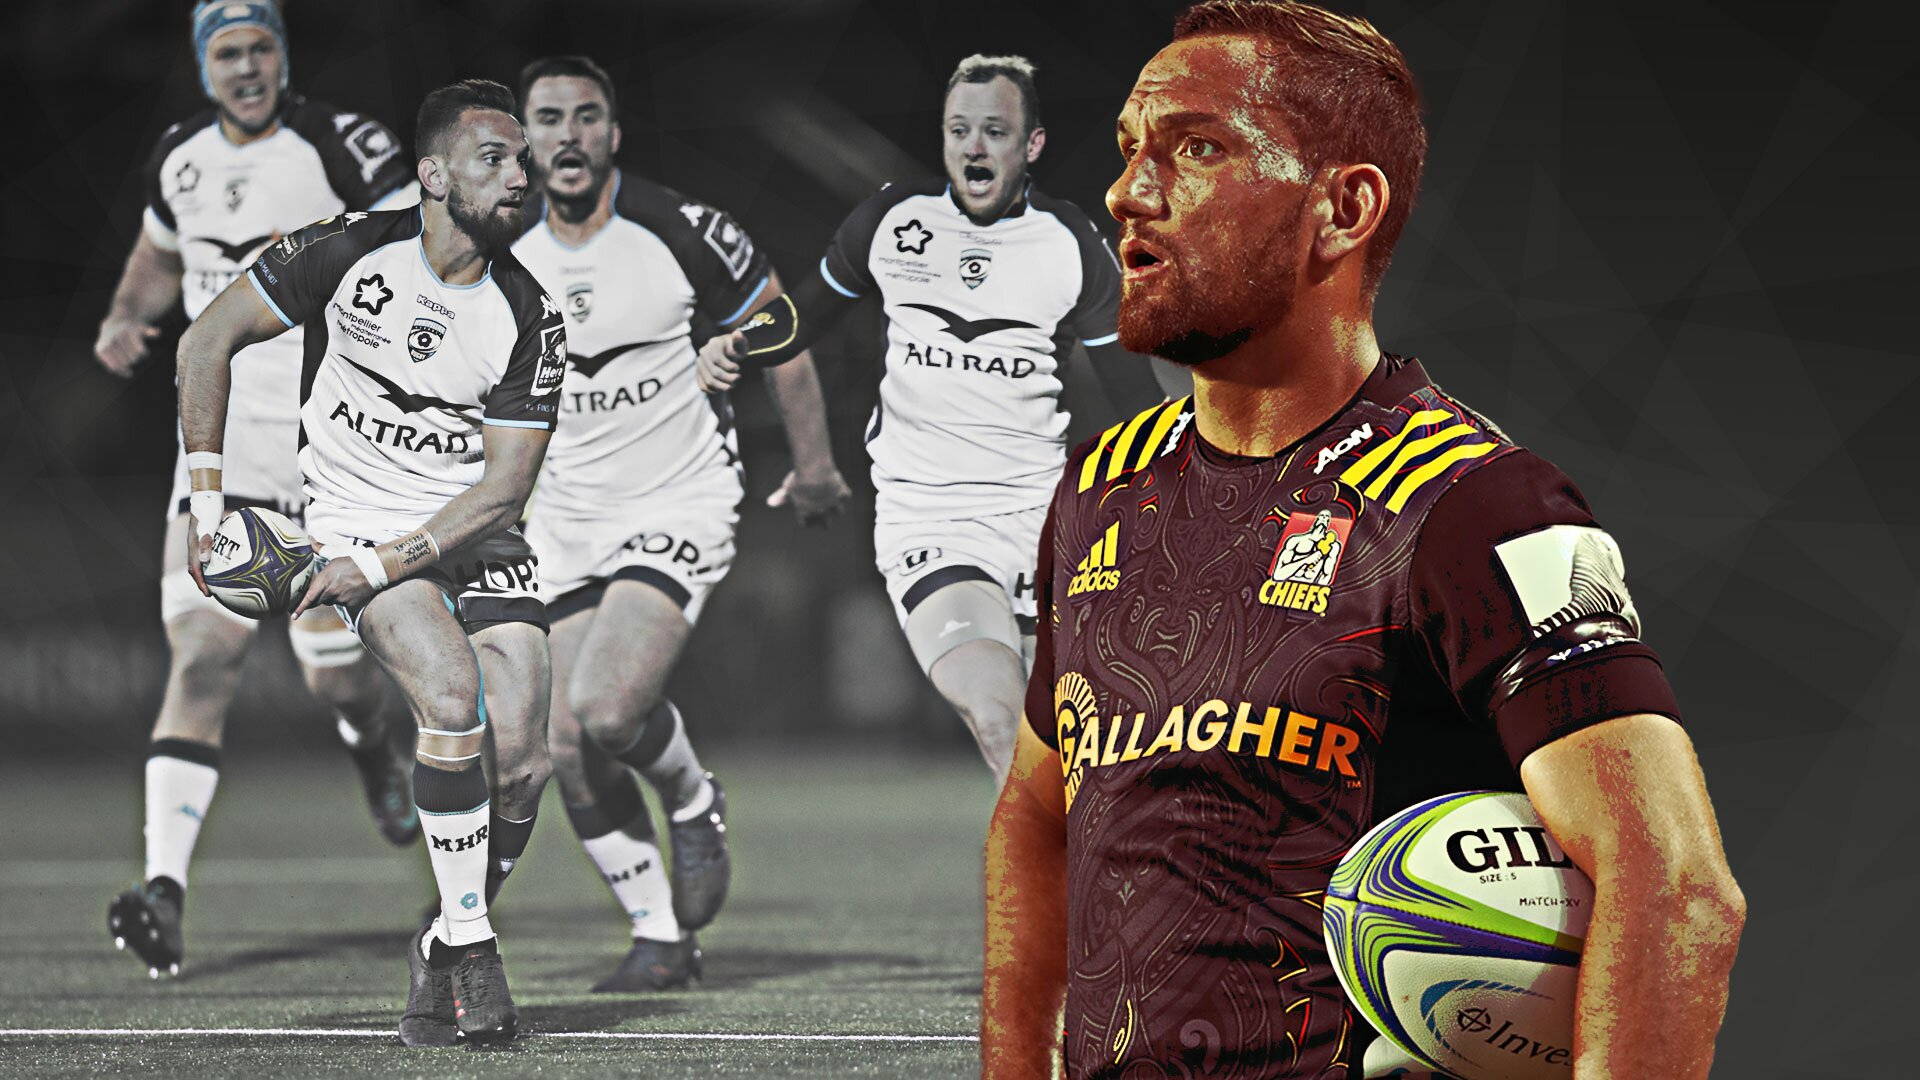 Aaron Cruden sets the record straight: what went wrong in France and why he returned to New Zealand